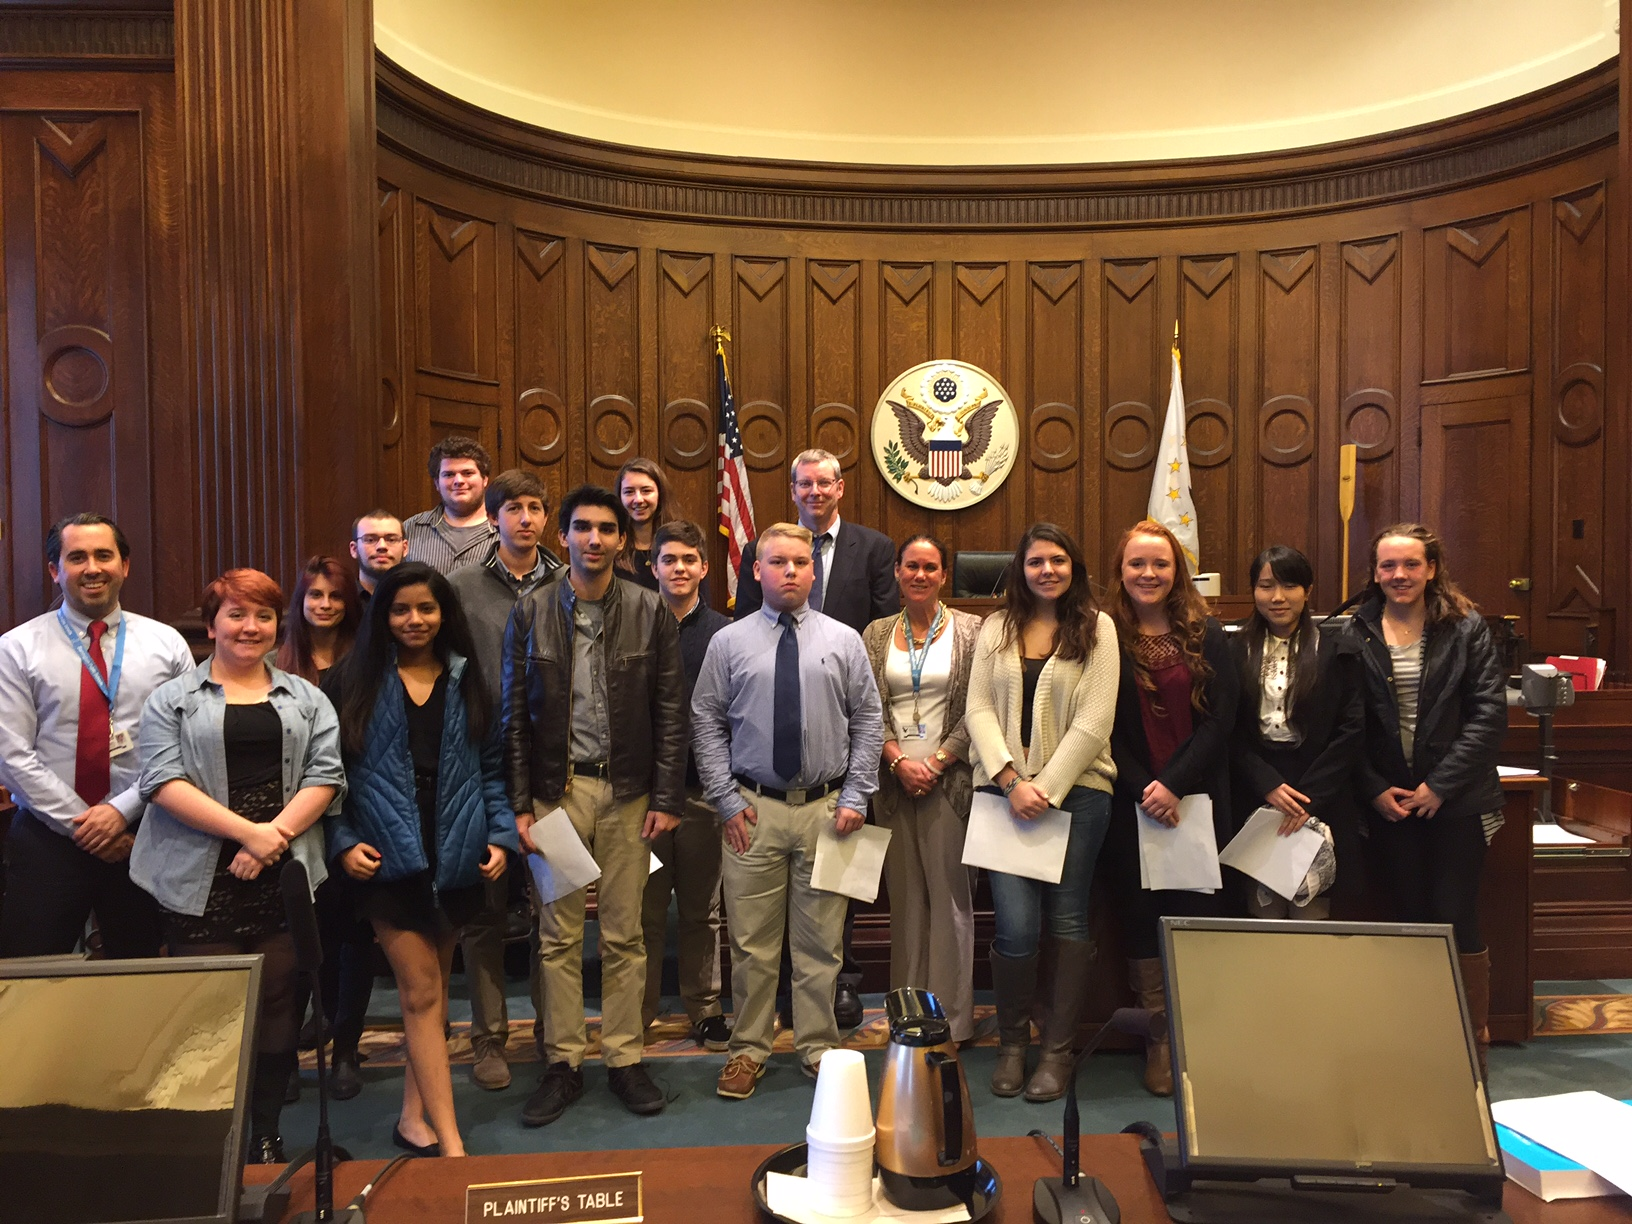 Oana Groza, second from the left in the rear, and her senior class from Barrington High School with U.S. District Court Magistrate Judge Lincoln D. Almond